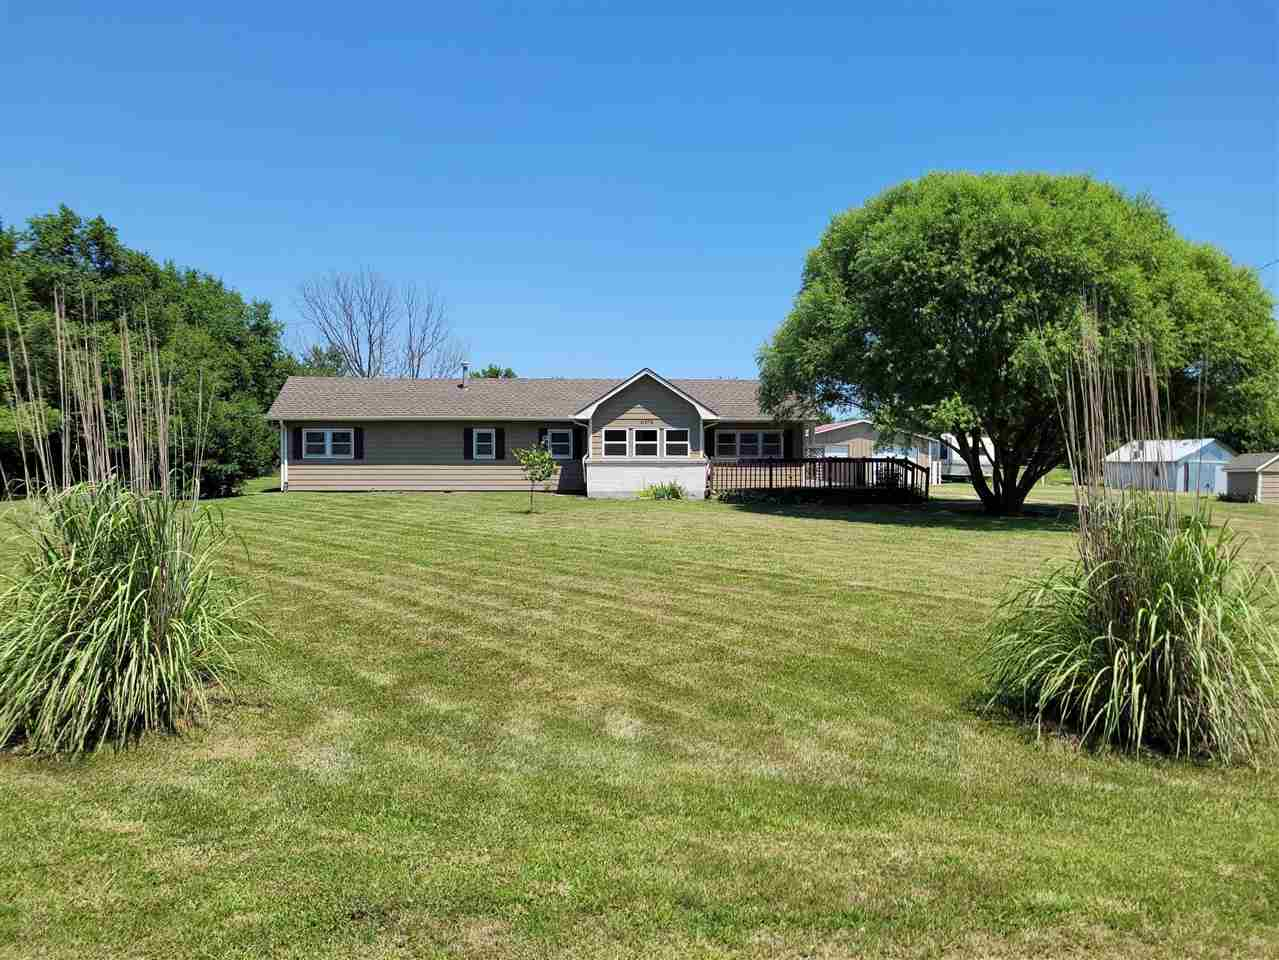 Peaceful setting located only about a 1/4 mile off paved road is this newly remodeled home with 3 be